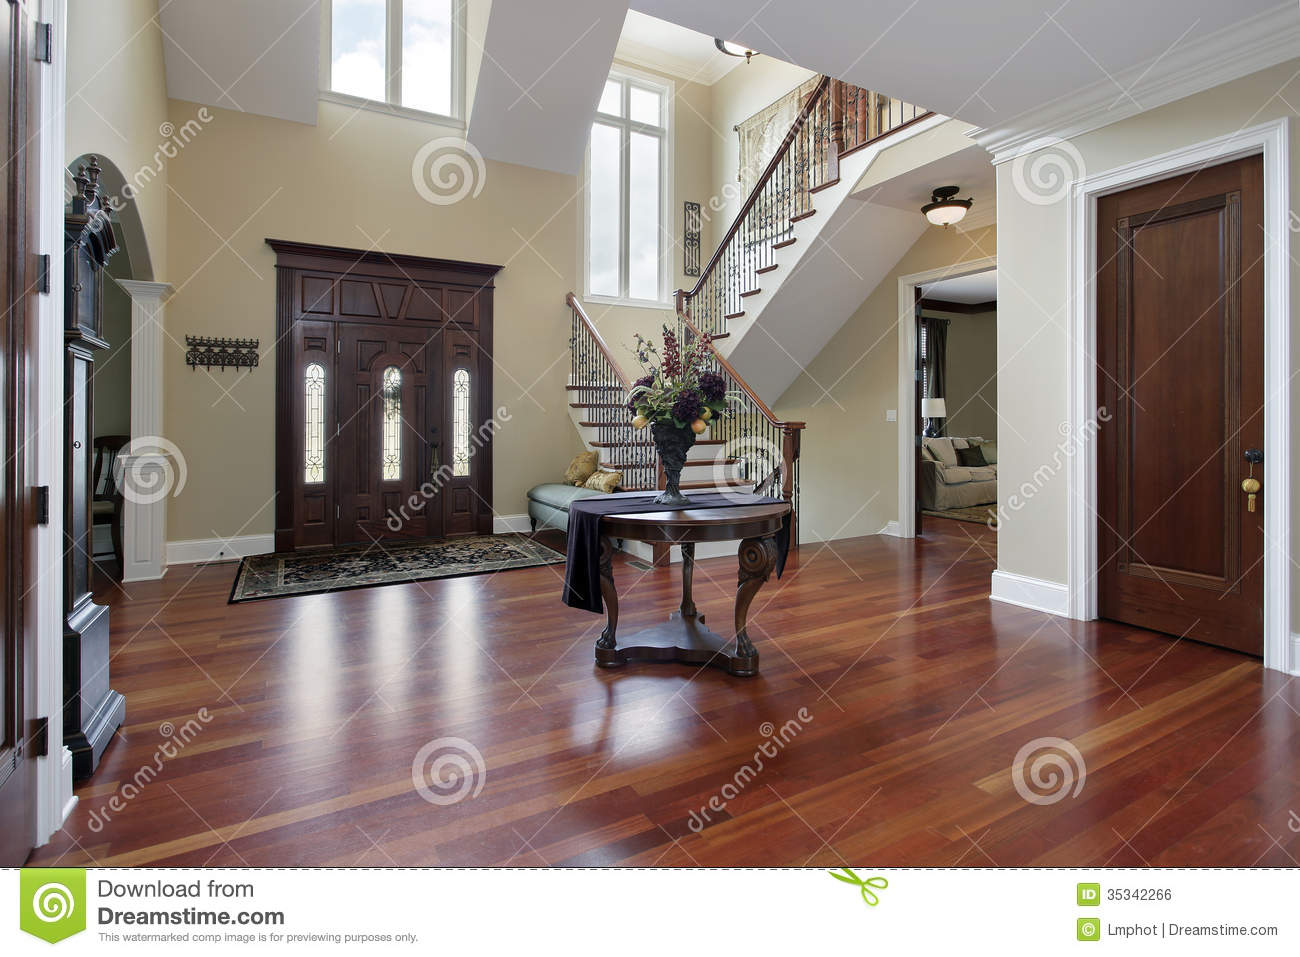 Entrance Foyer And Circulation In House : Foyer in luxury home stock photo image of design